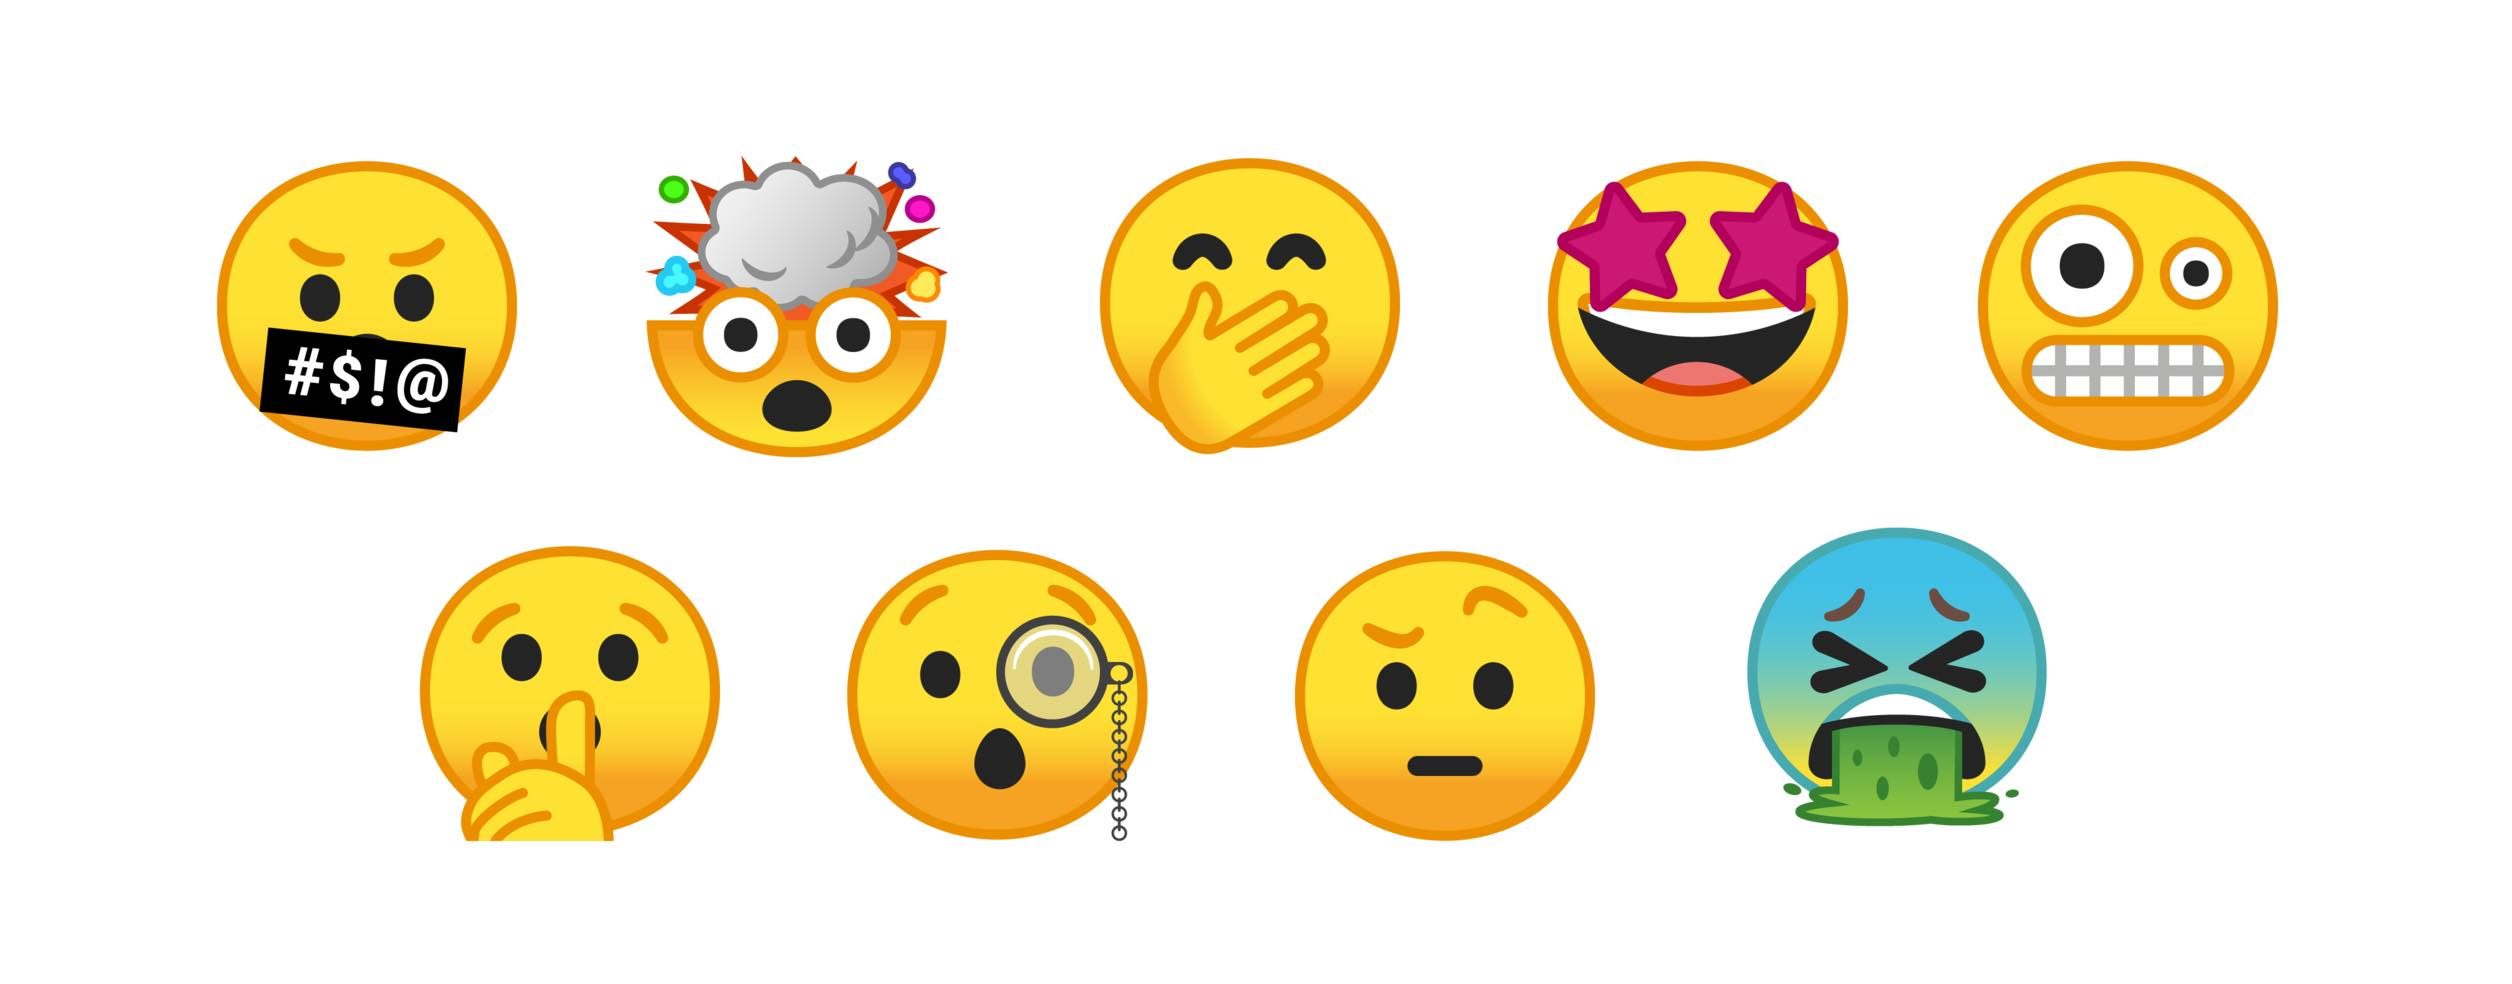 how to show emojis on android